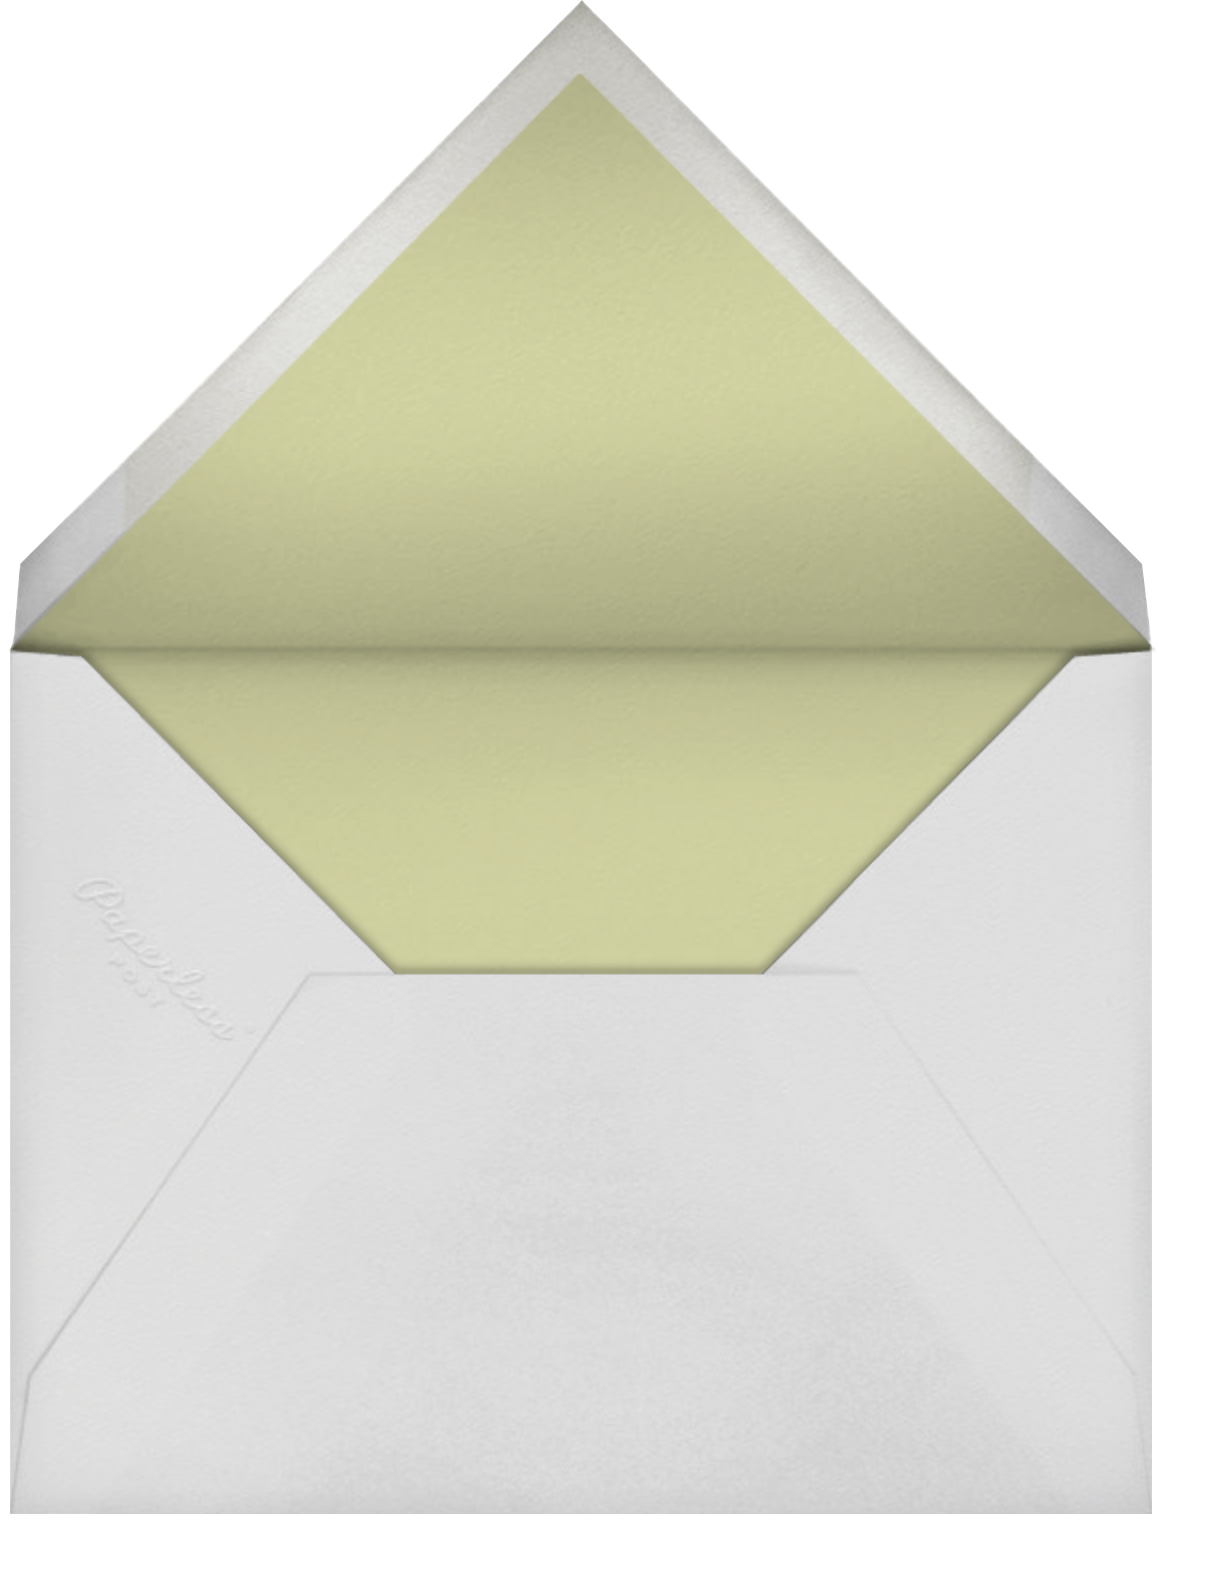 Wilcox - Celery - Paperless Post - Cocktail party - envelope back